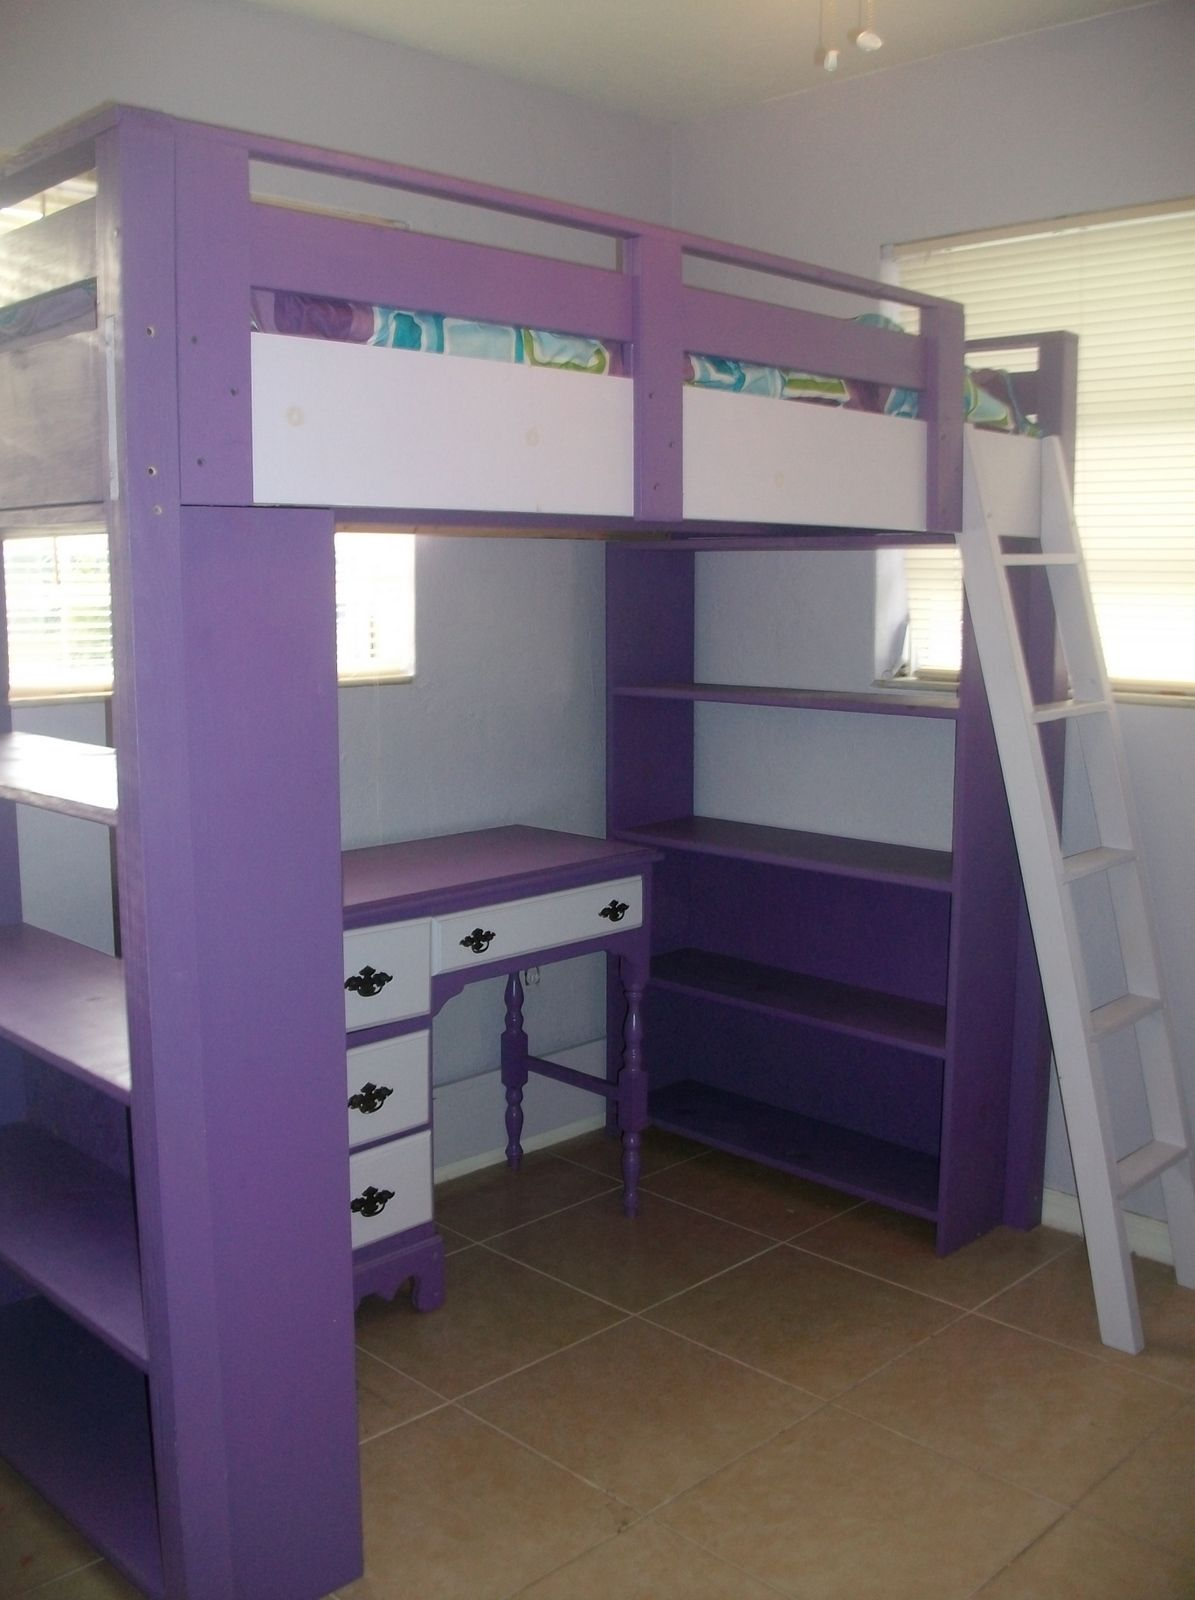 Diy Loft Bed Plans With A Desk Under | Purple Loft Bed With Bookcases | Do